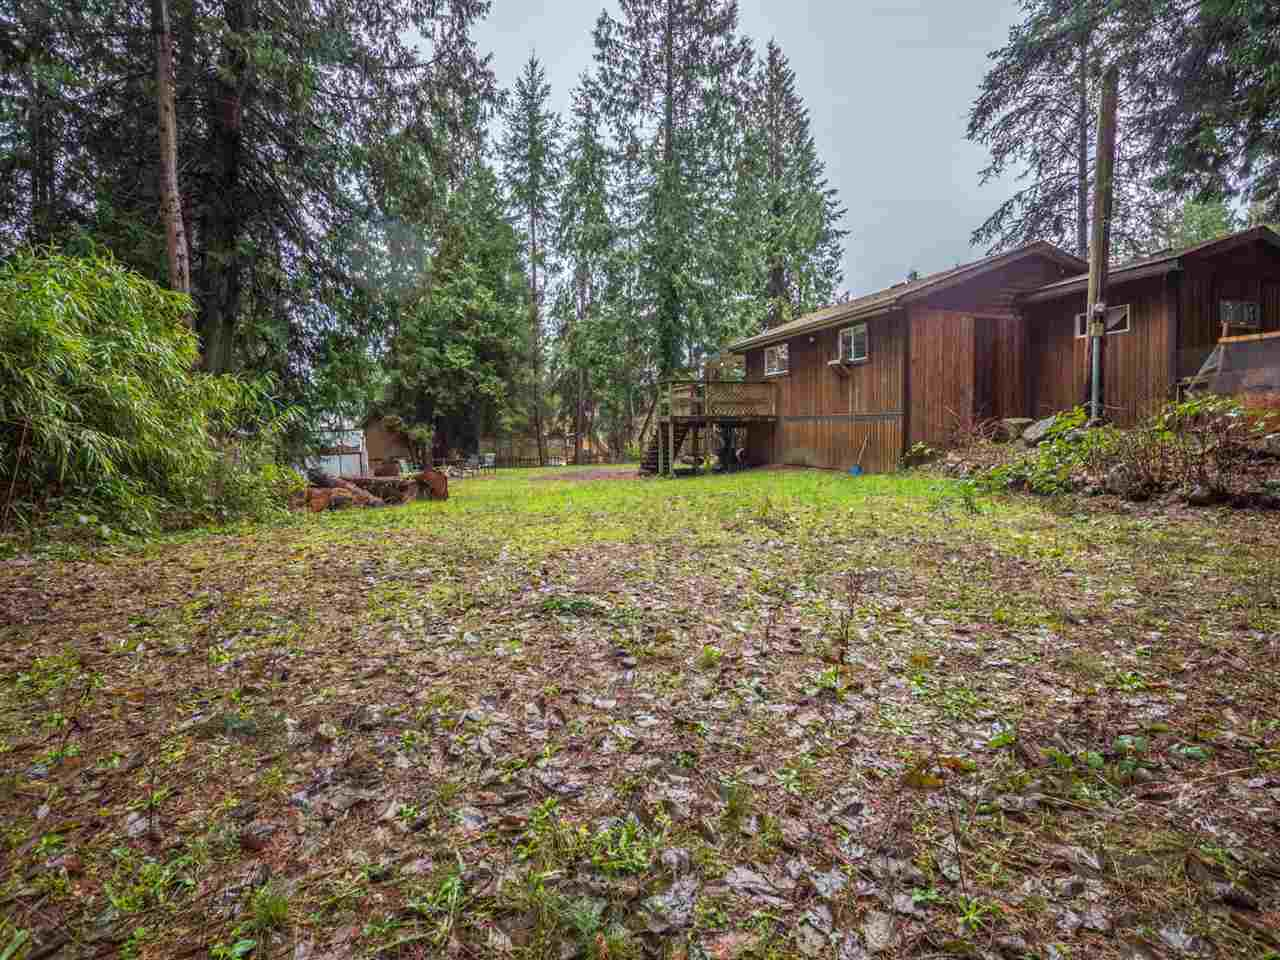 Photo 15: Photos: 5592 WAKEFIELD Road in Sechelt: Sechelt District Manufactured Home for sale (Sunshine Coast)  : MLS®# R2230720